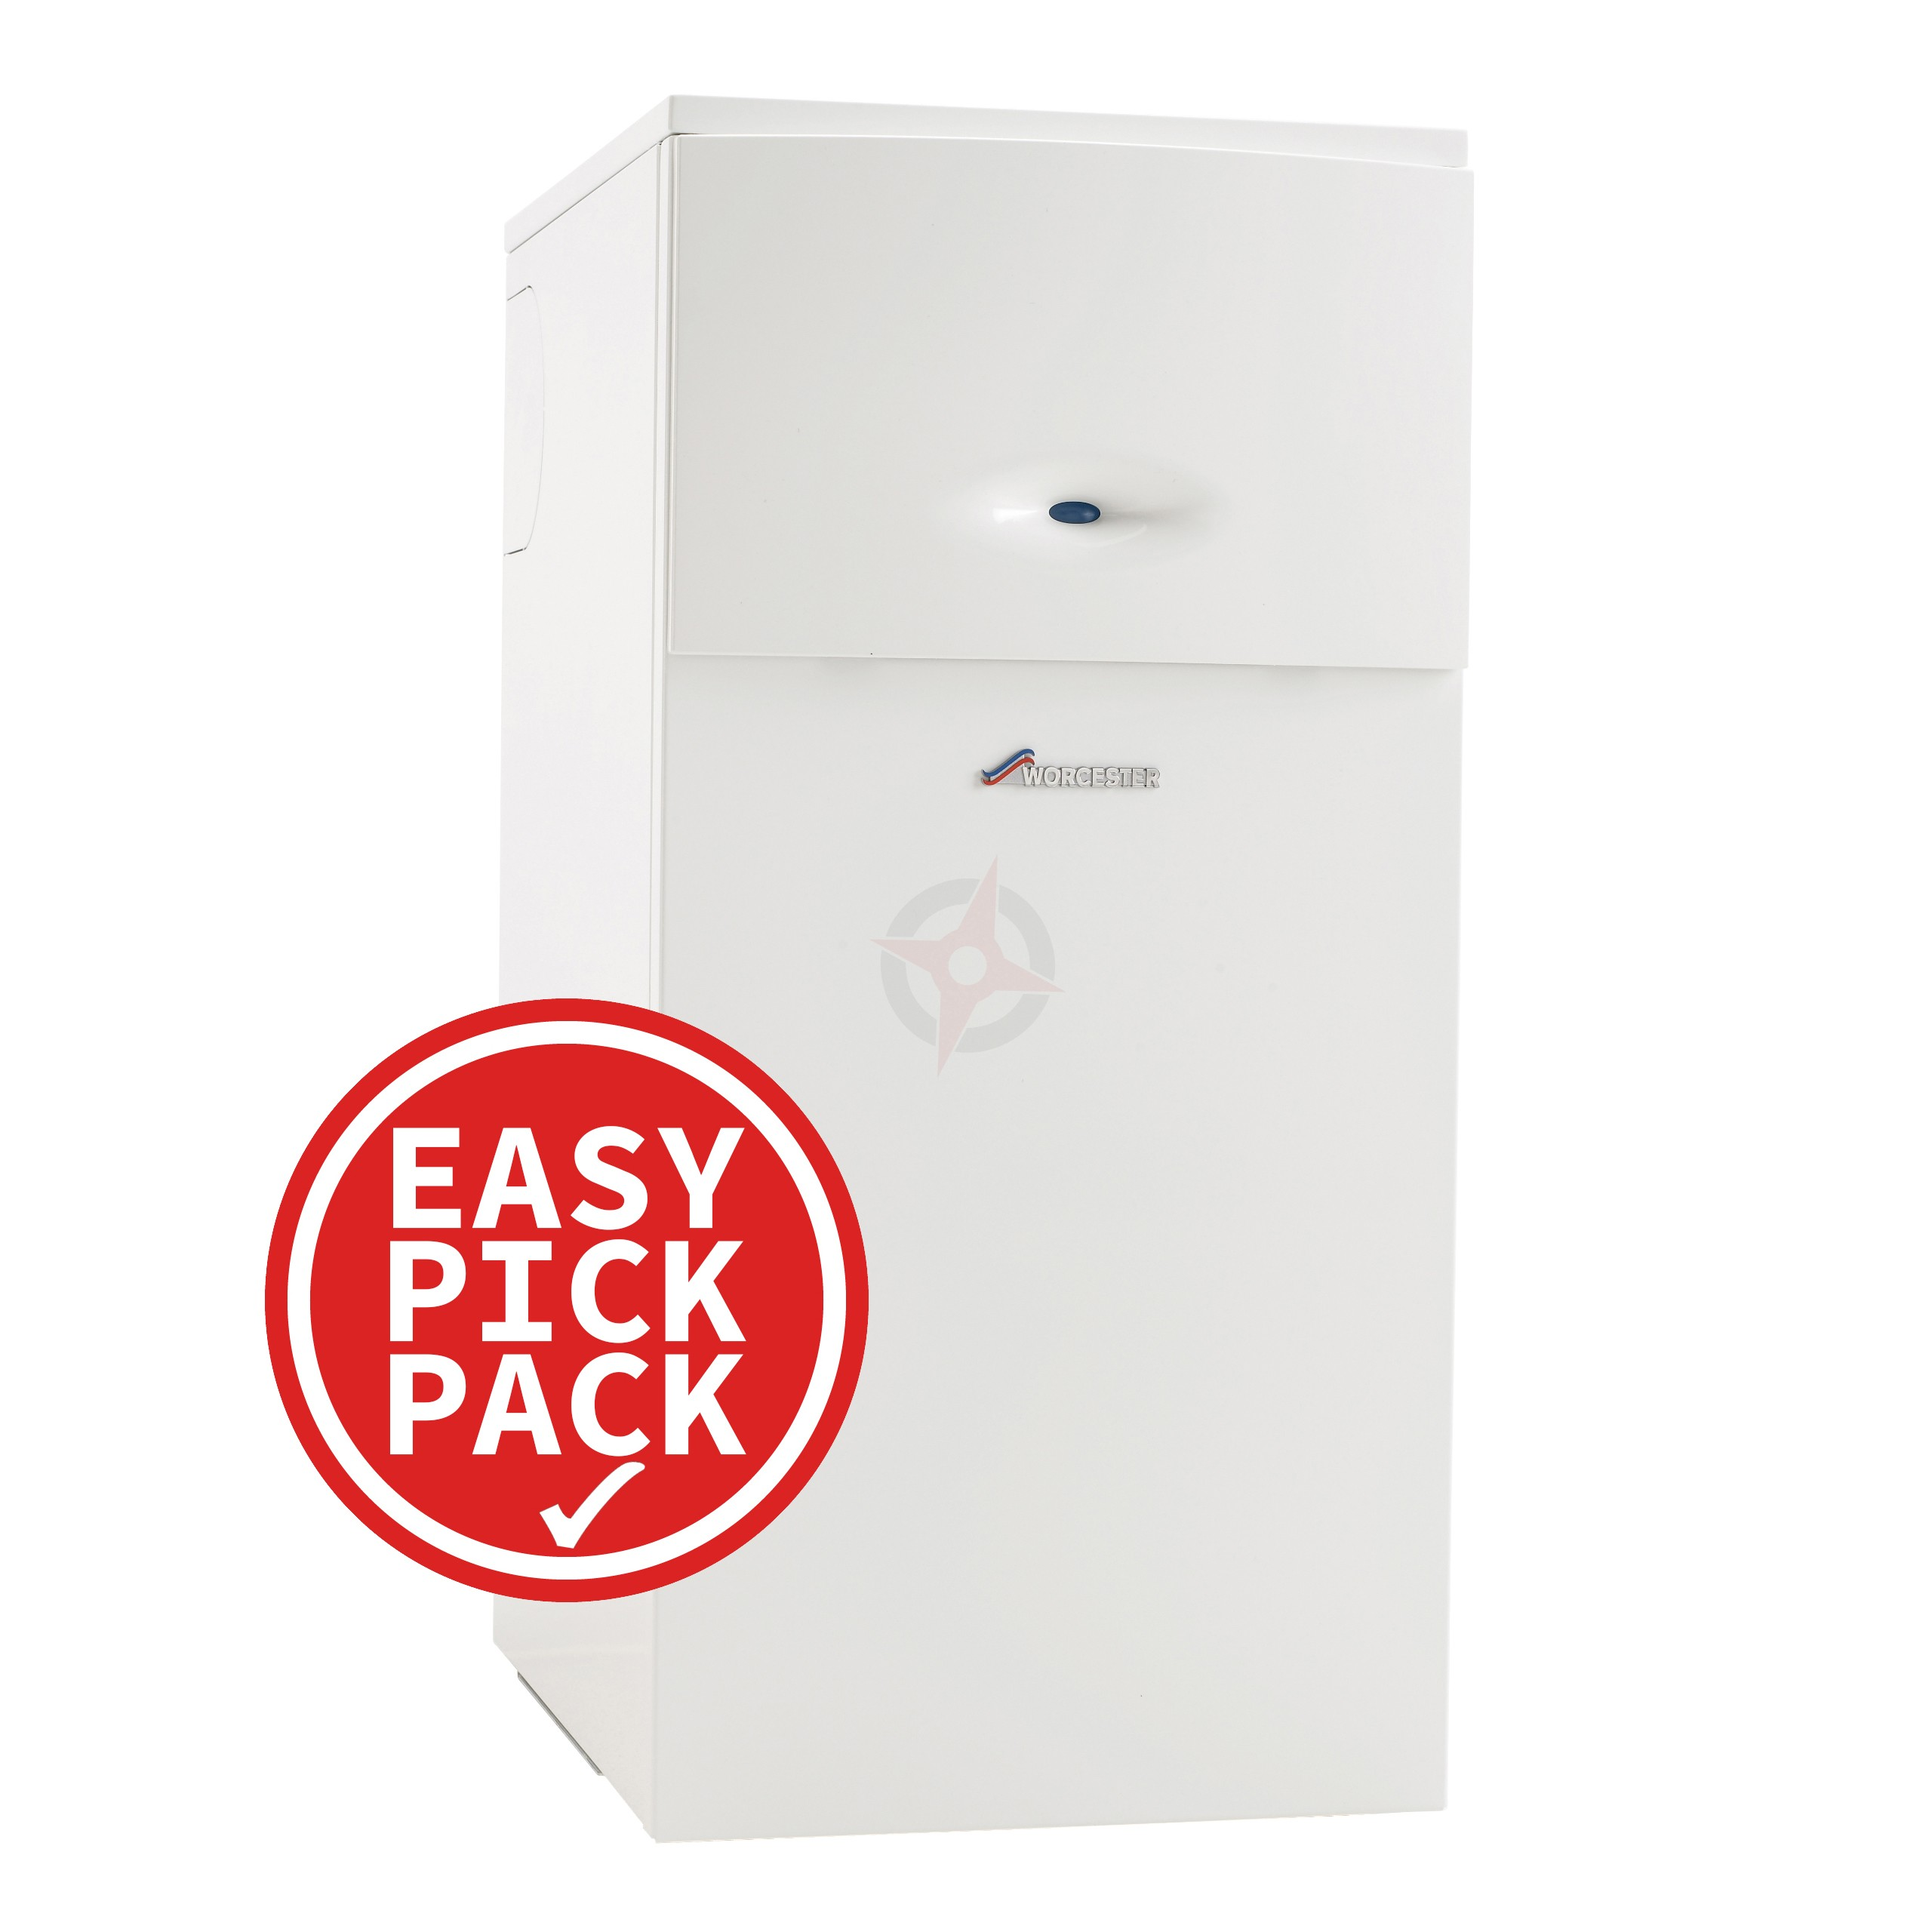 Worcester Greenstar Floor Standing 42CDI (ErP) Regular Boiler Easy Pick Pack